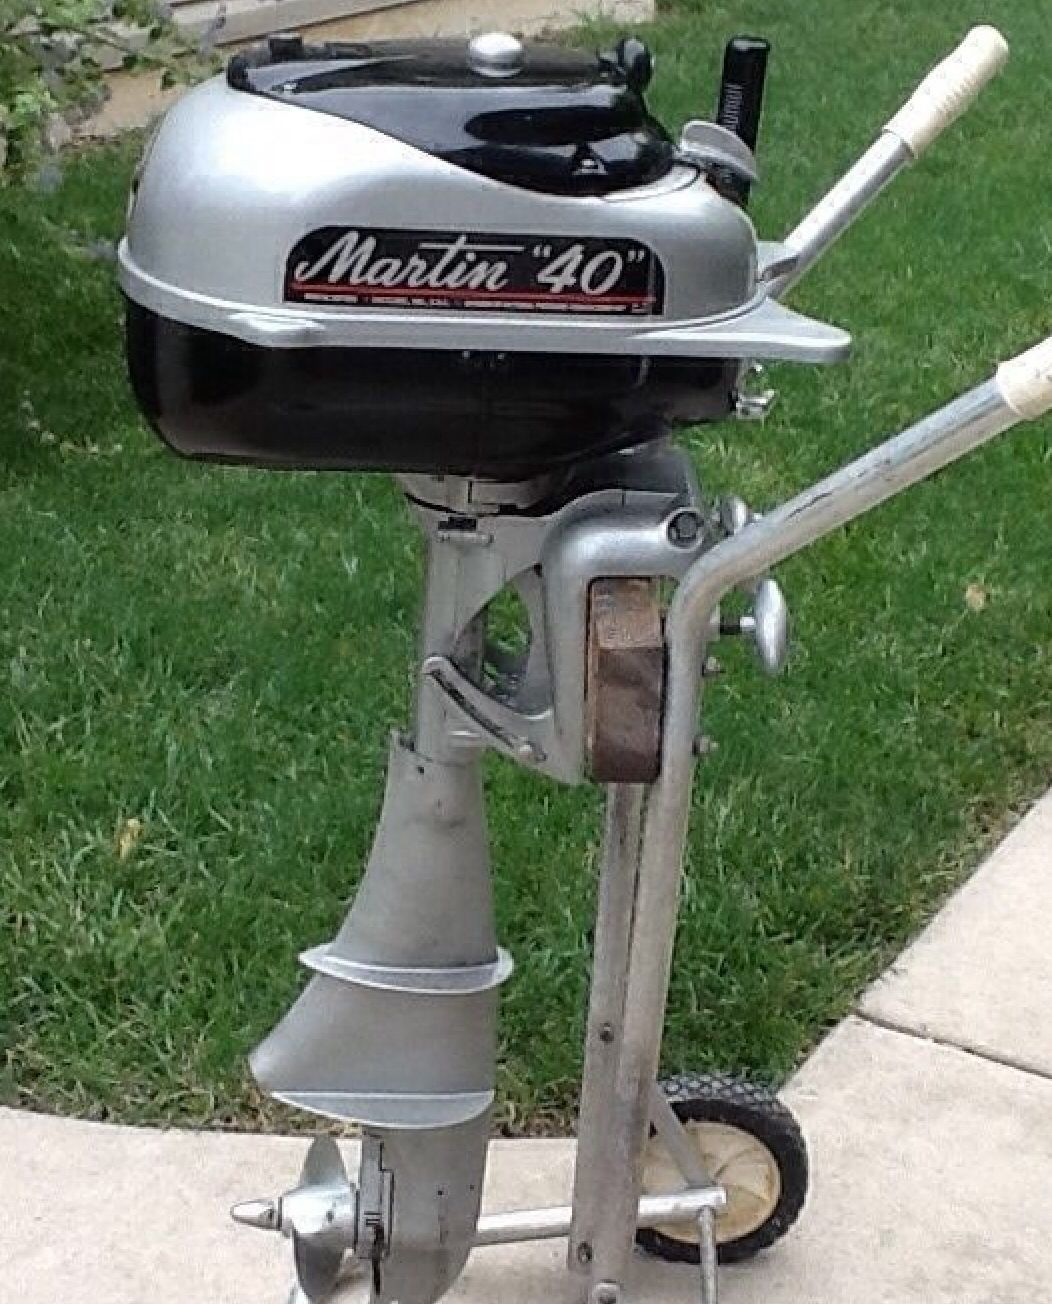 Vintage Martin Outboard Old Boats Sail Boat Motors Engine